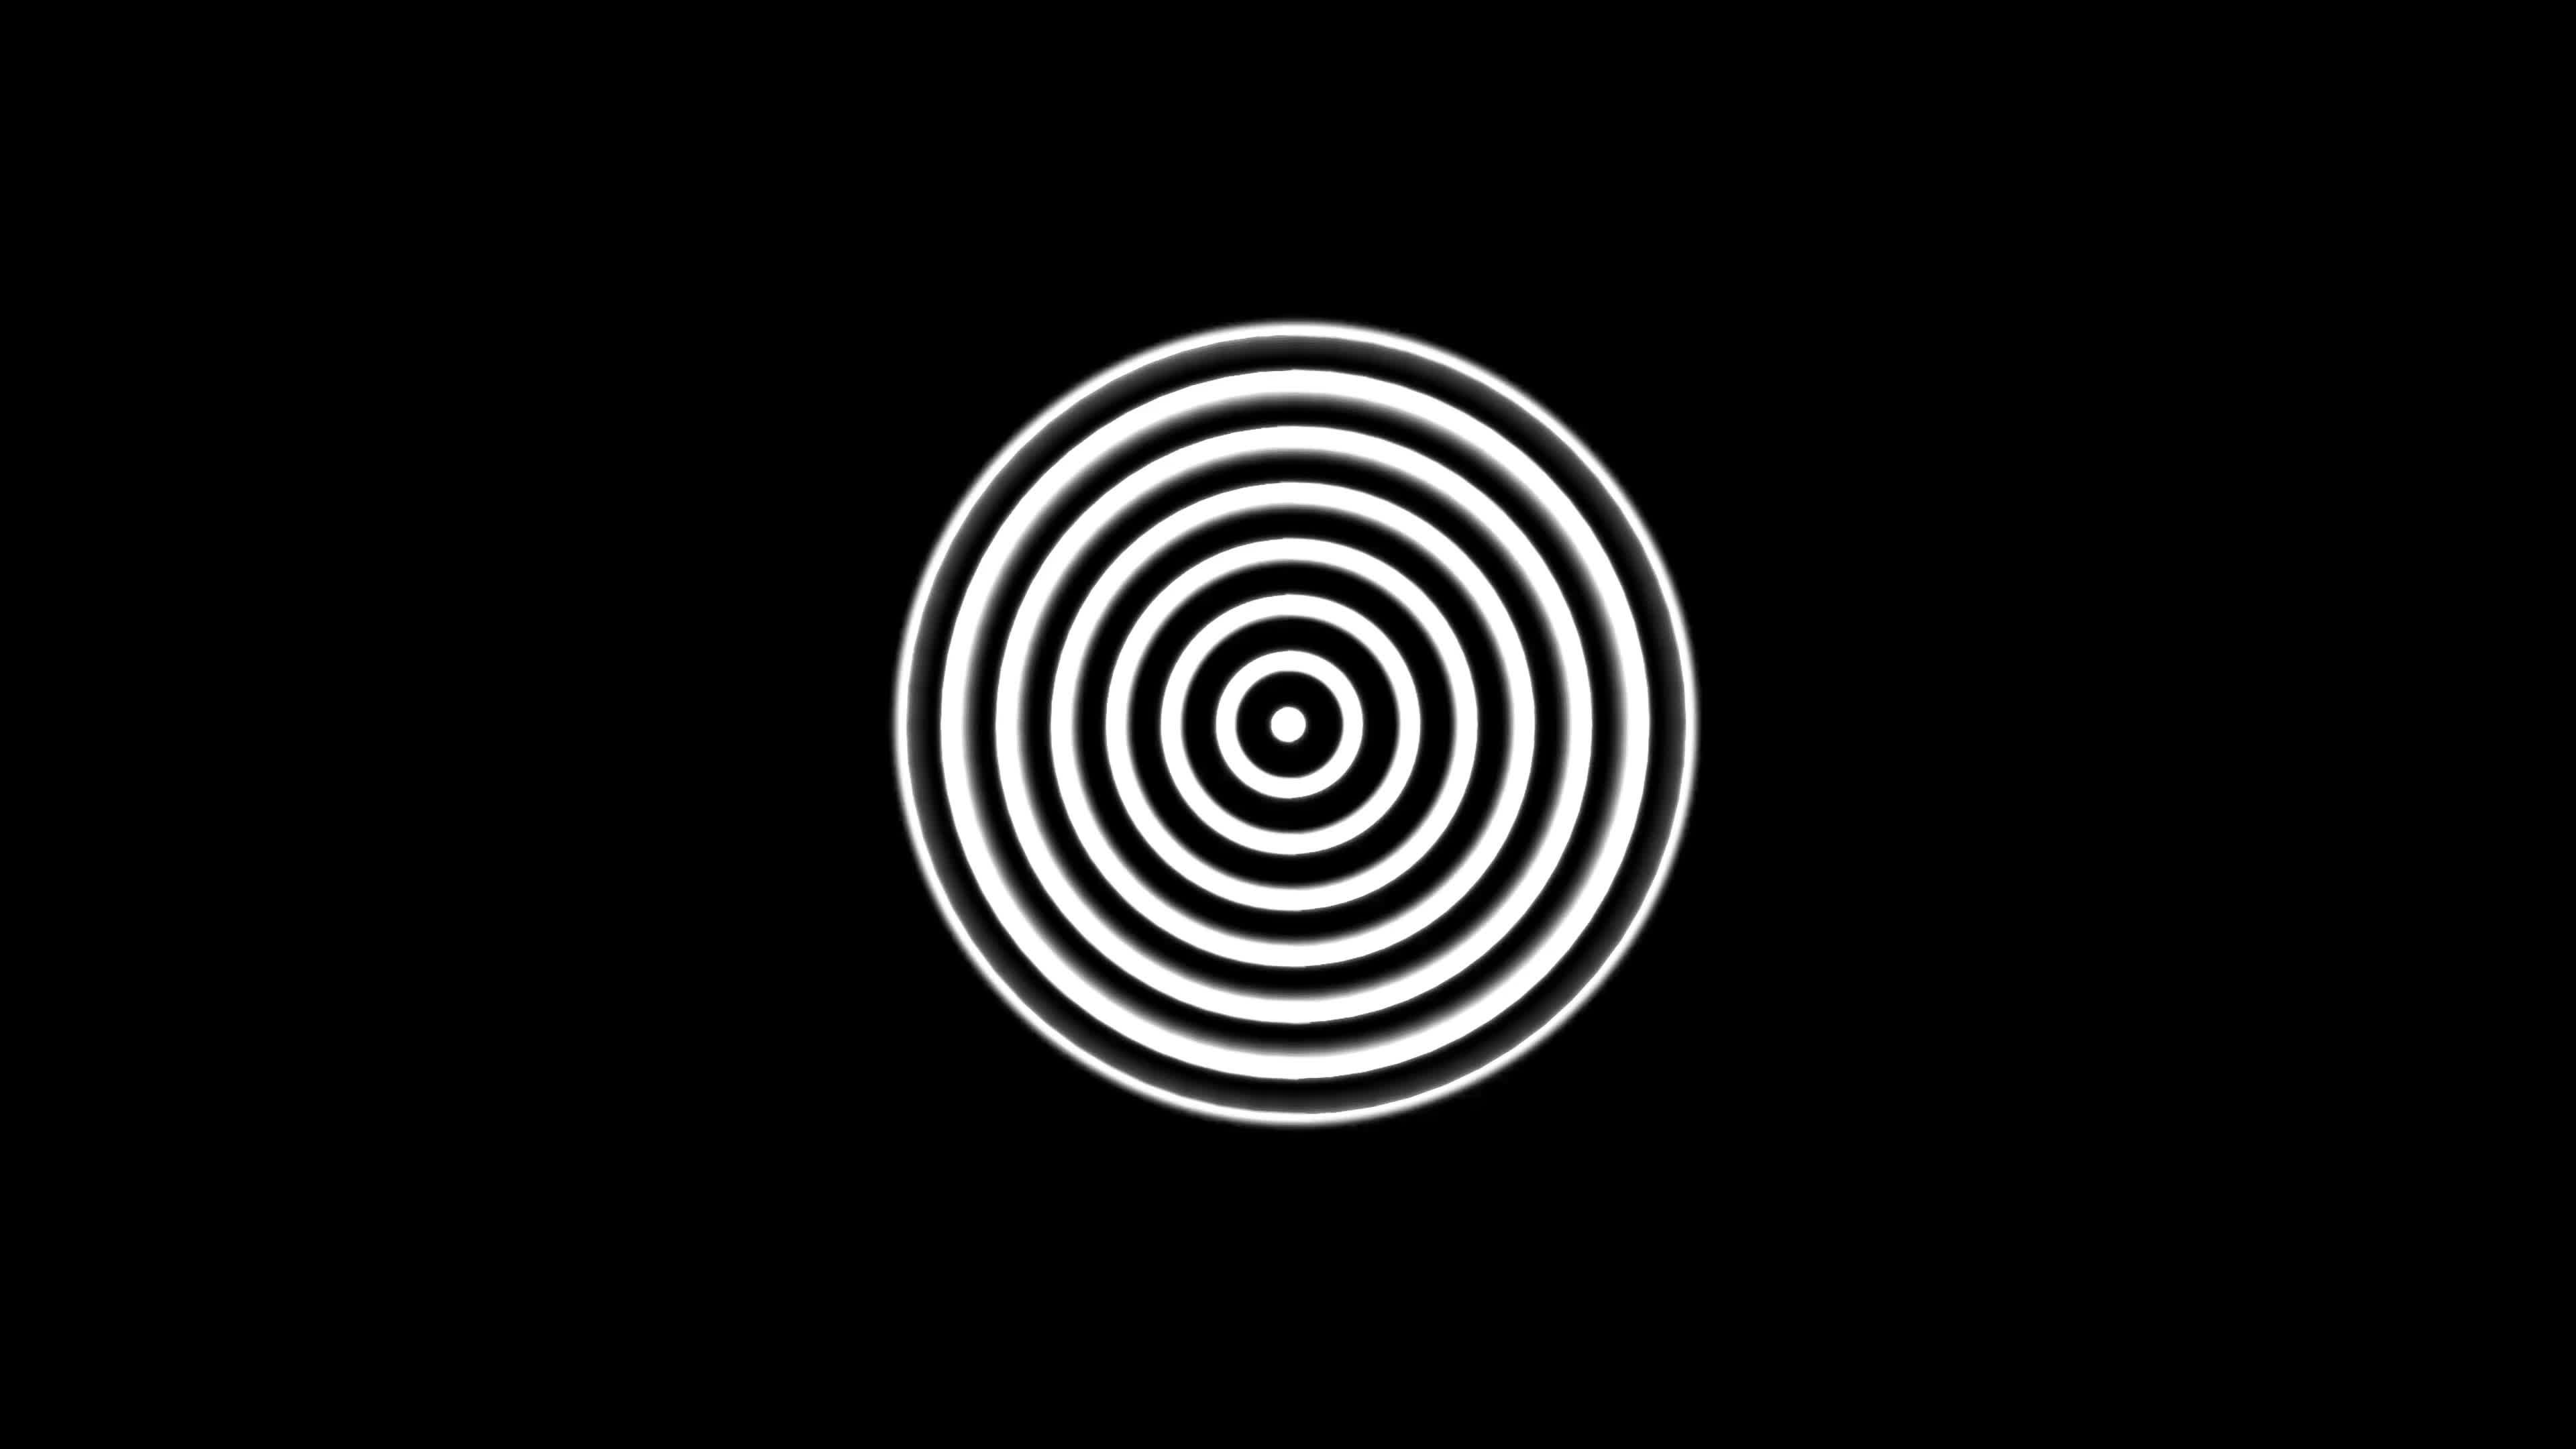 Optical Illusion Circle Gifs Search Search Share on Homdor